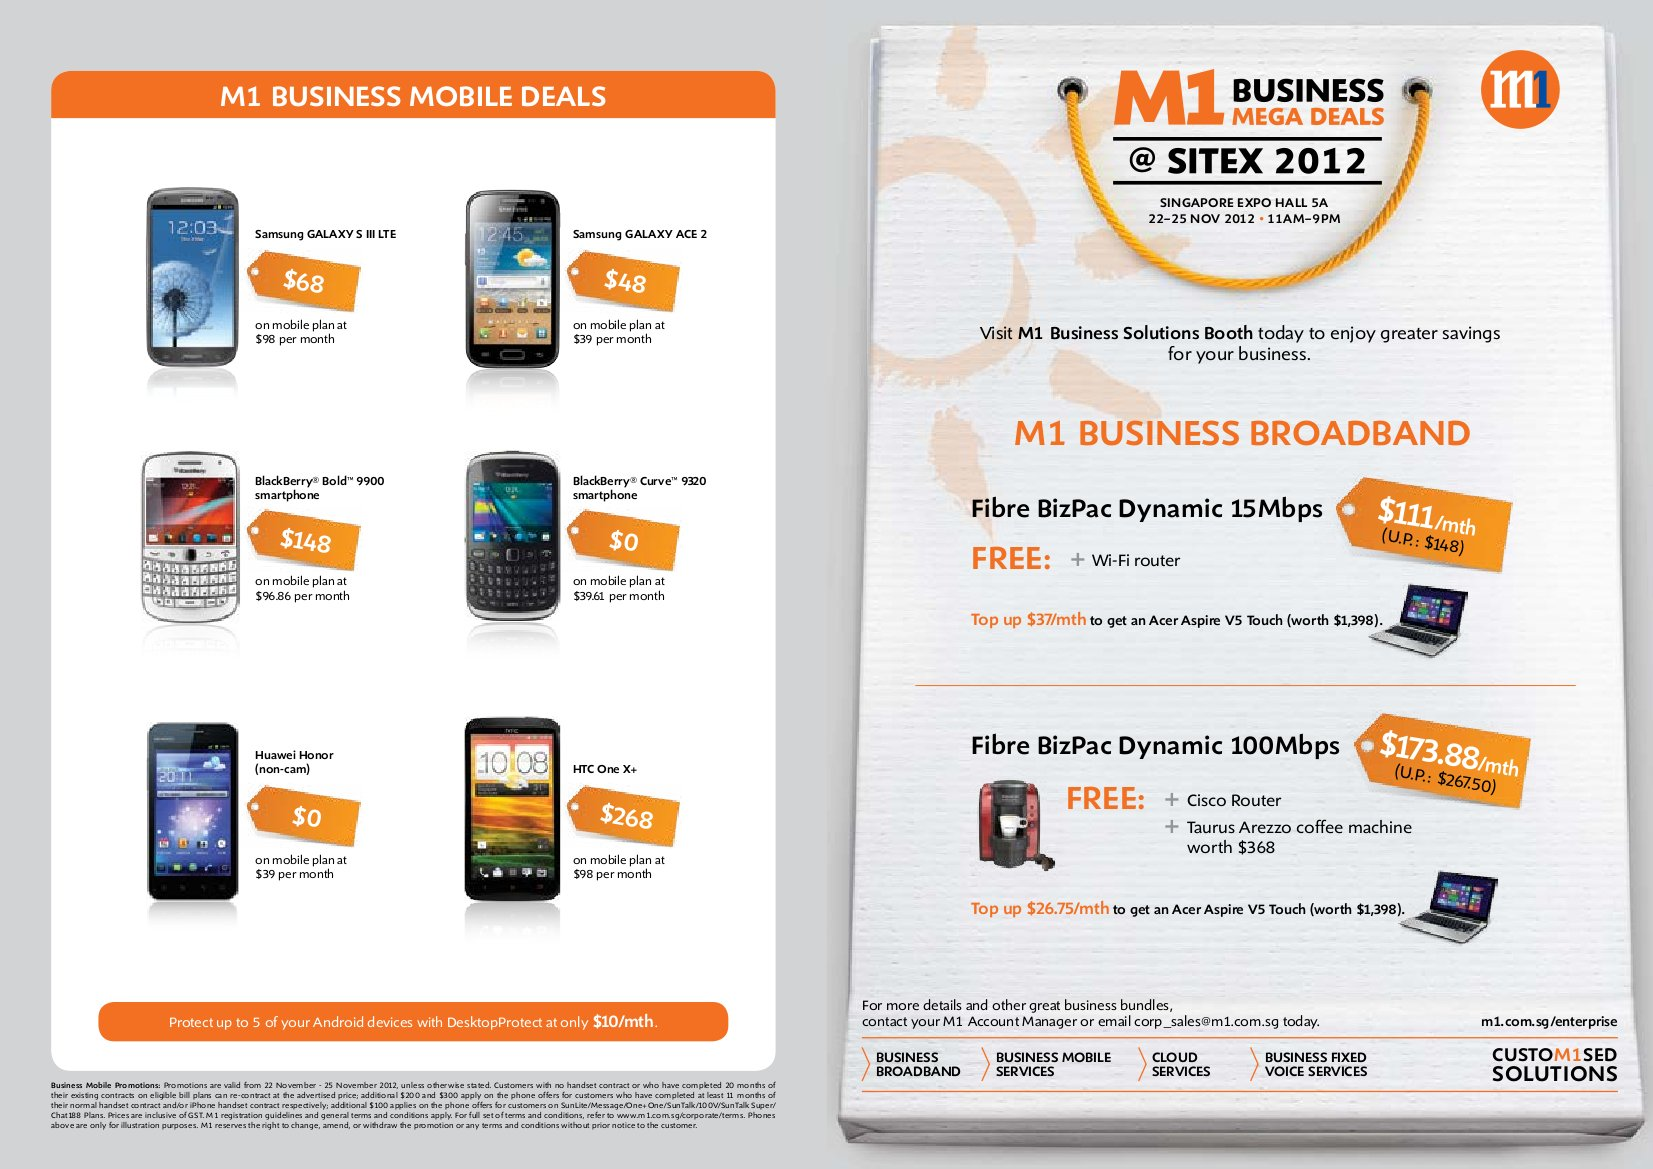 SITEX 2012 M1 Business Broadband And Mobile Deals 1